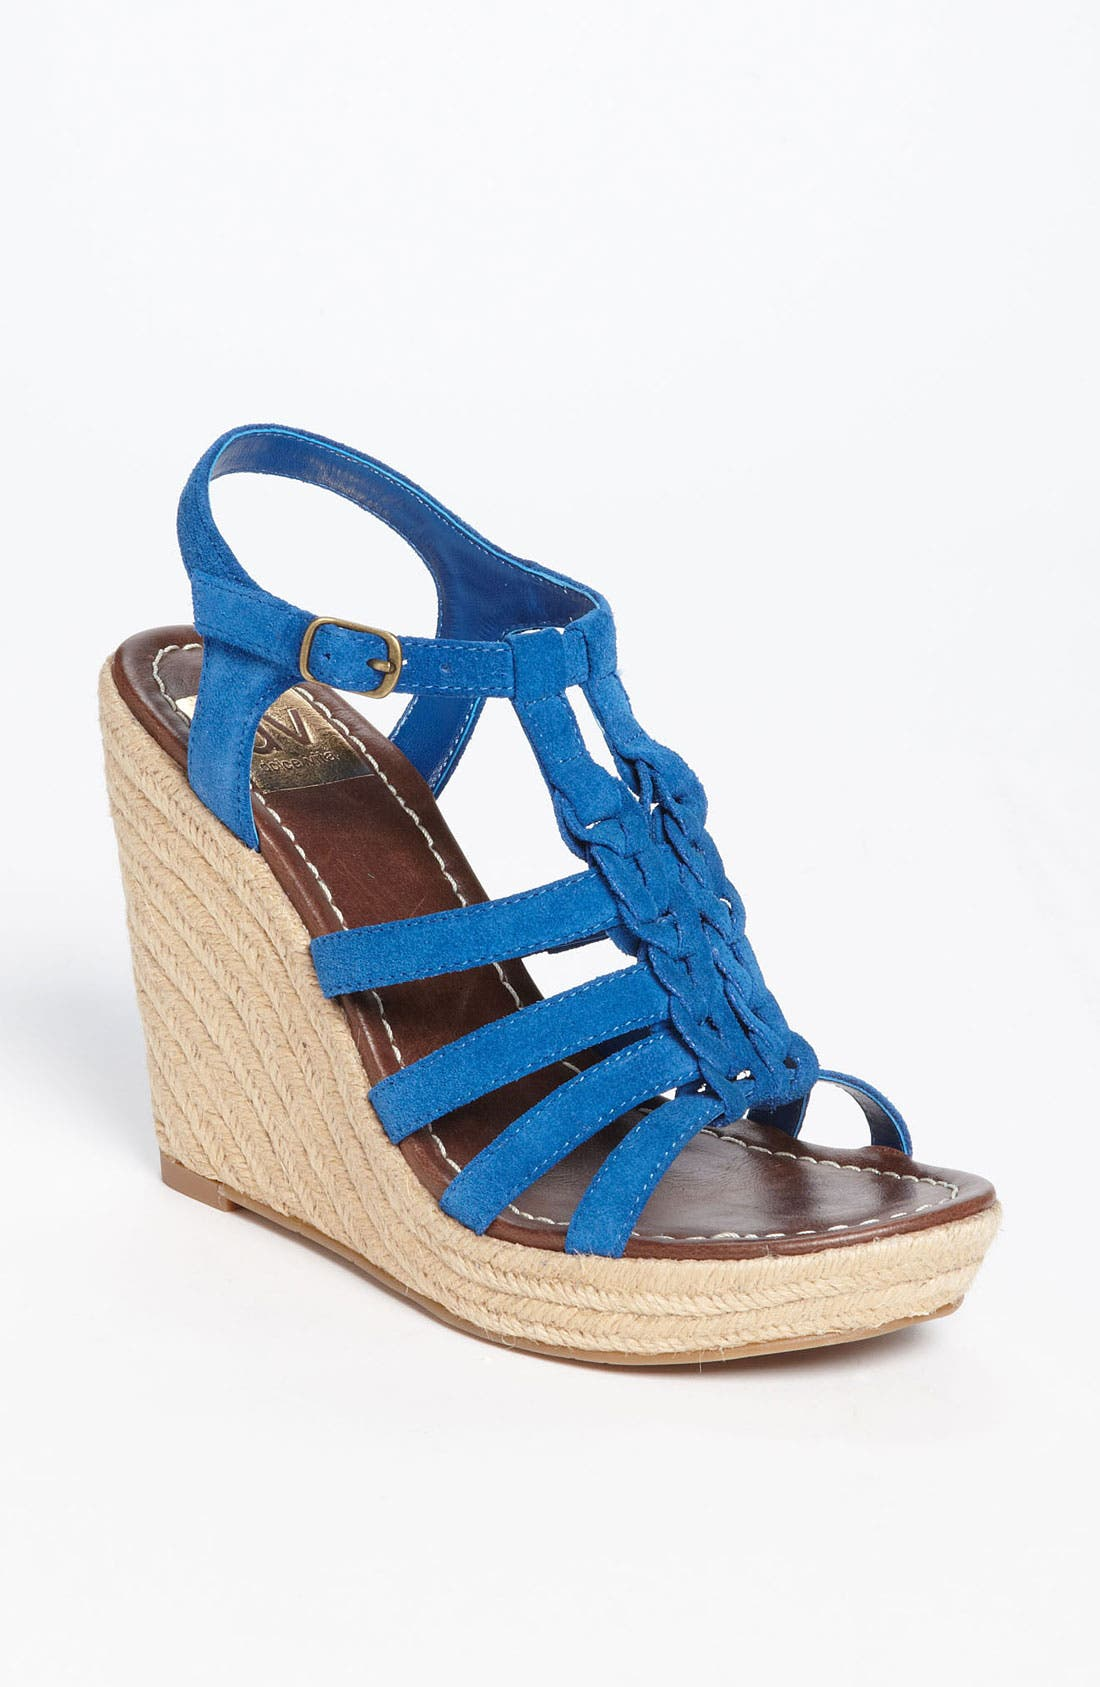 Alternate Image 1 Selected - DV by Dolce Vita 'Tarry' Sandal (Nordstrom Exclusive)